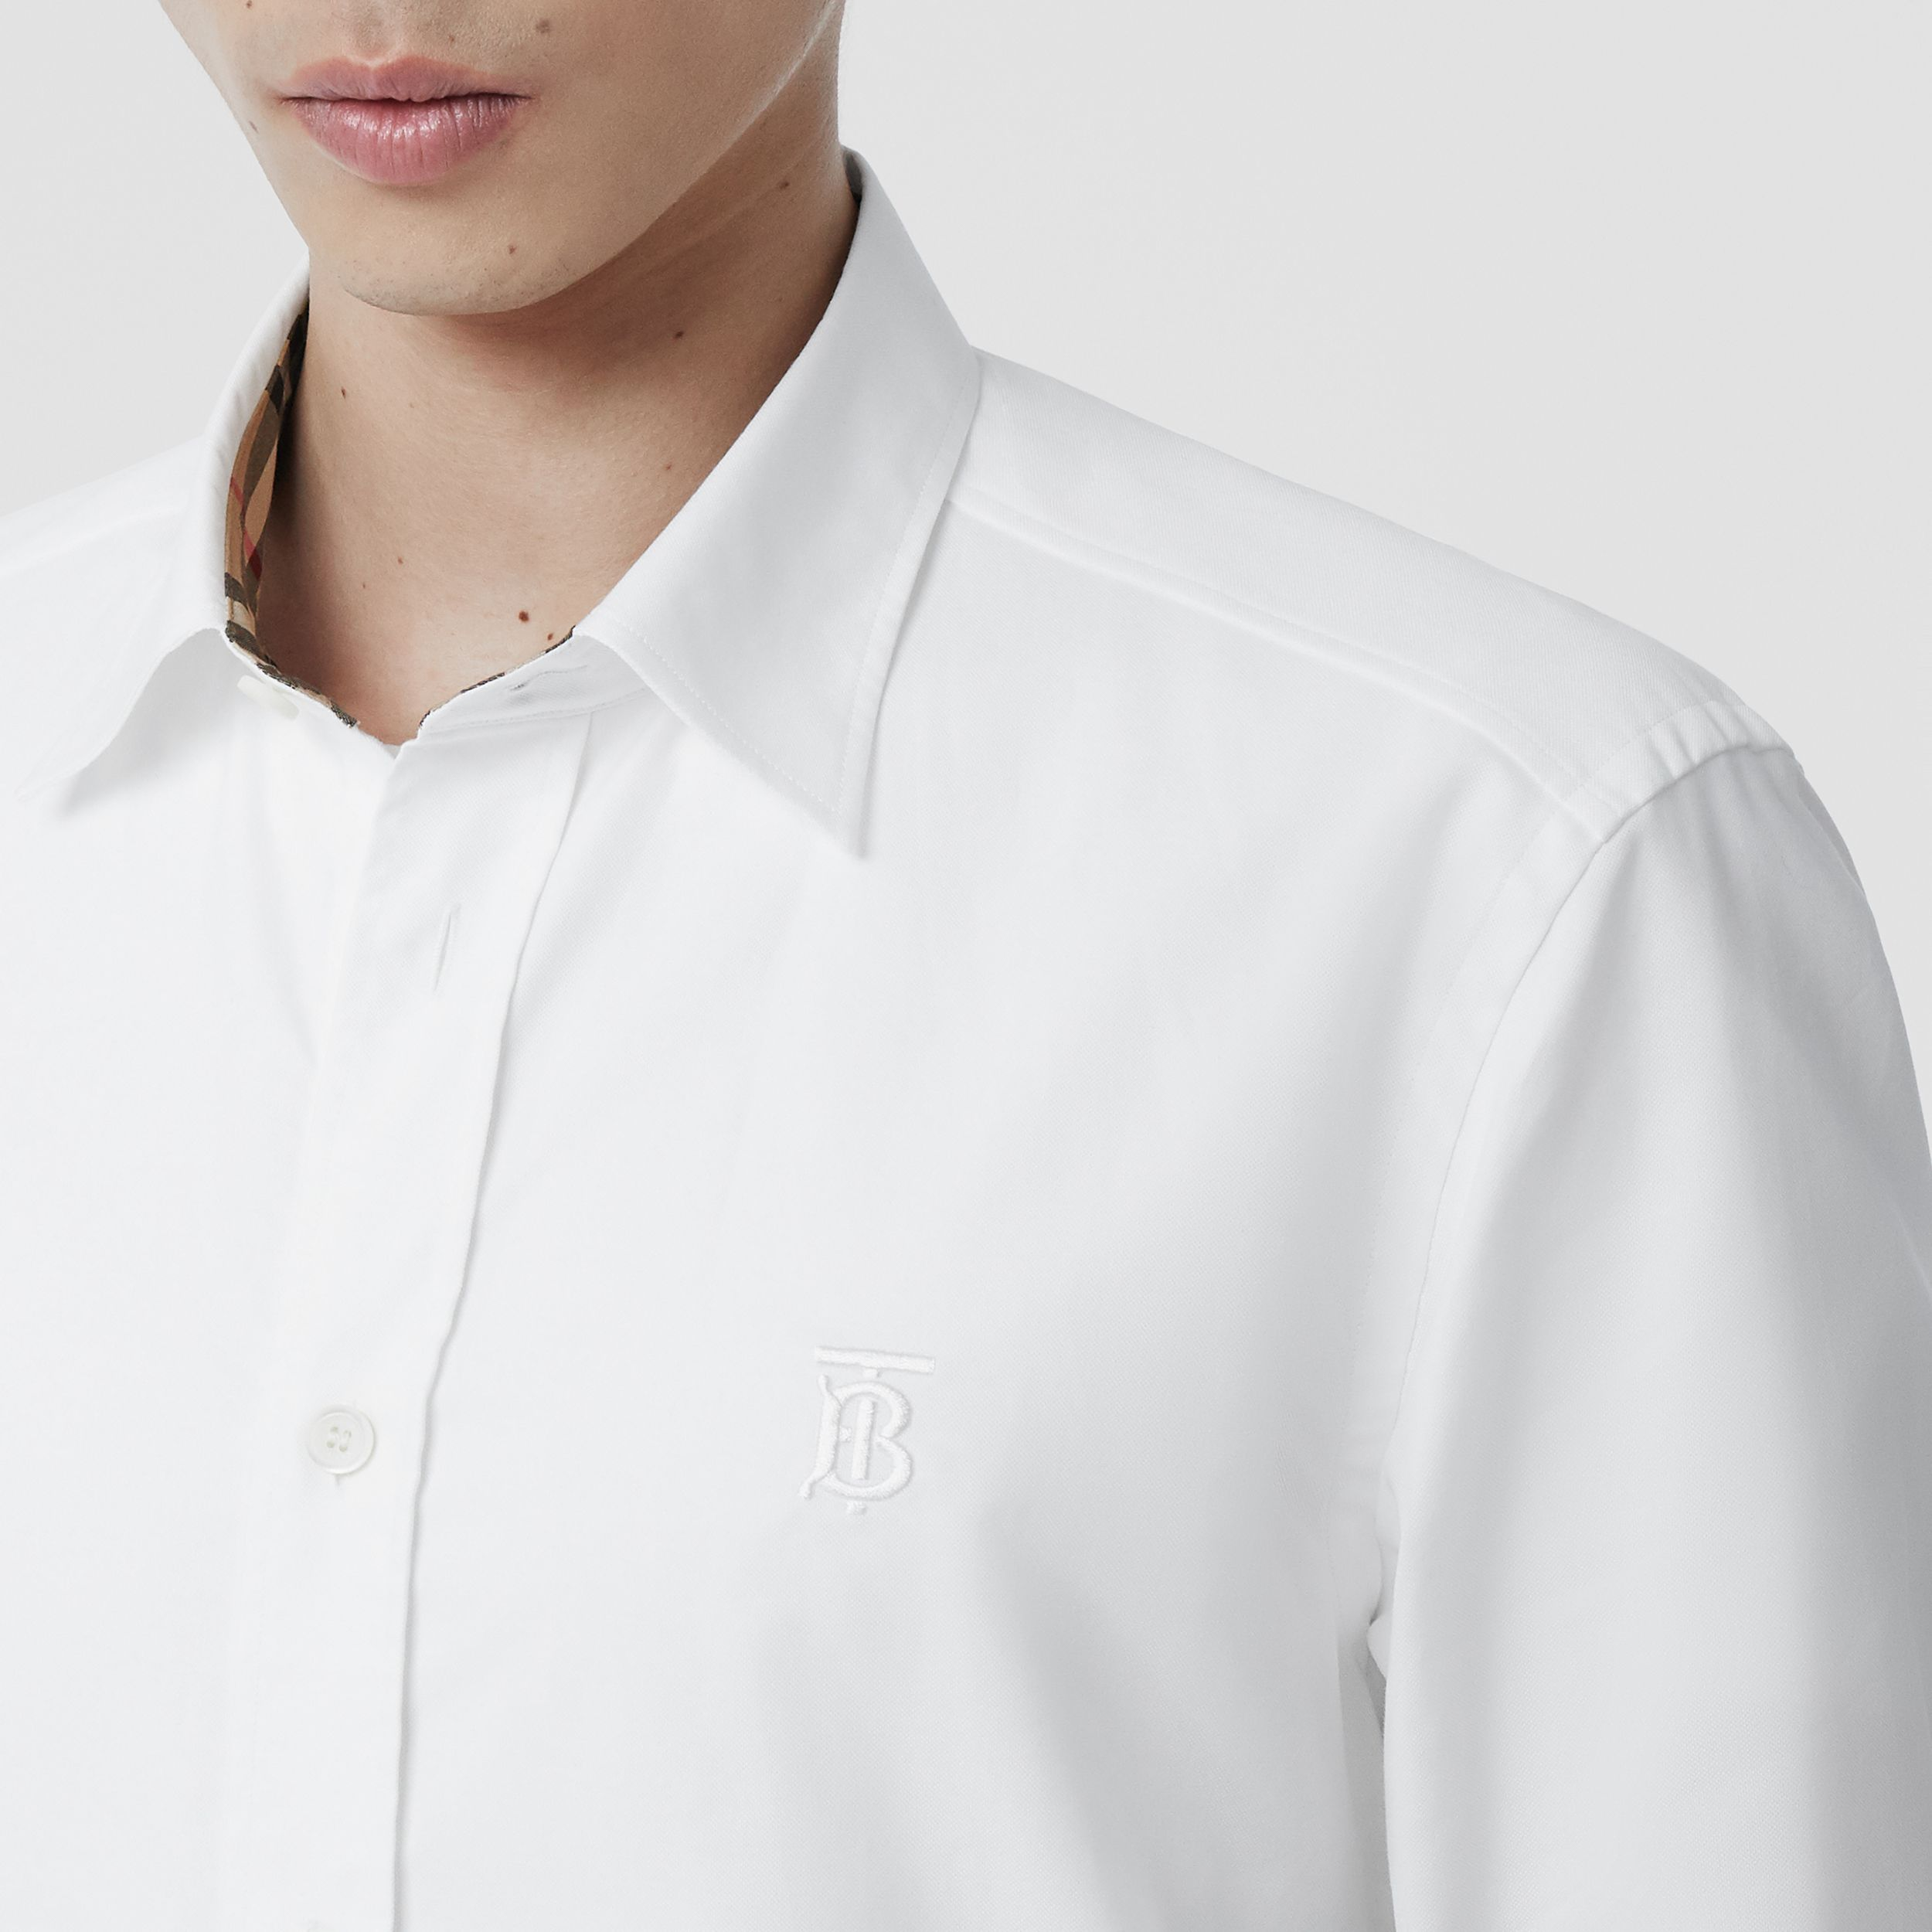 Monogram Motif Cotton Oxford Shirt in White - Men | Burberry - 2